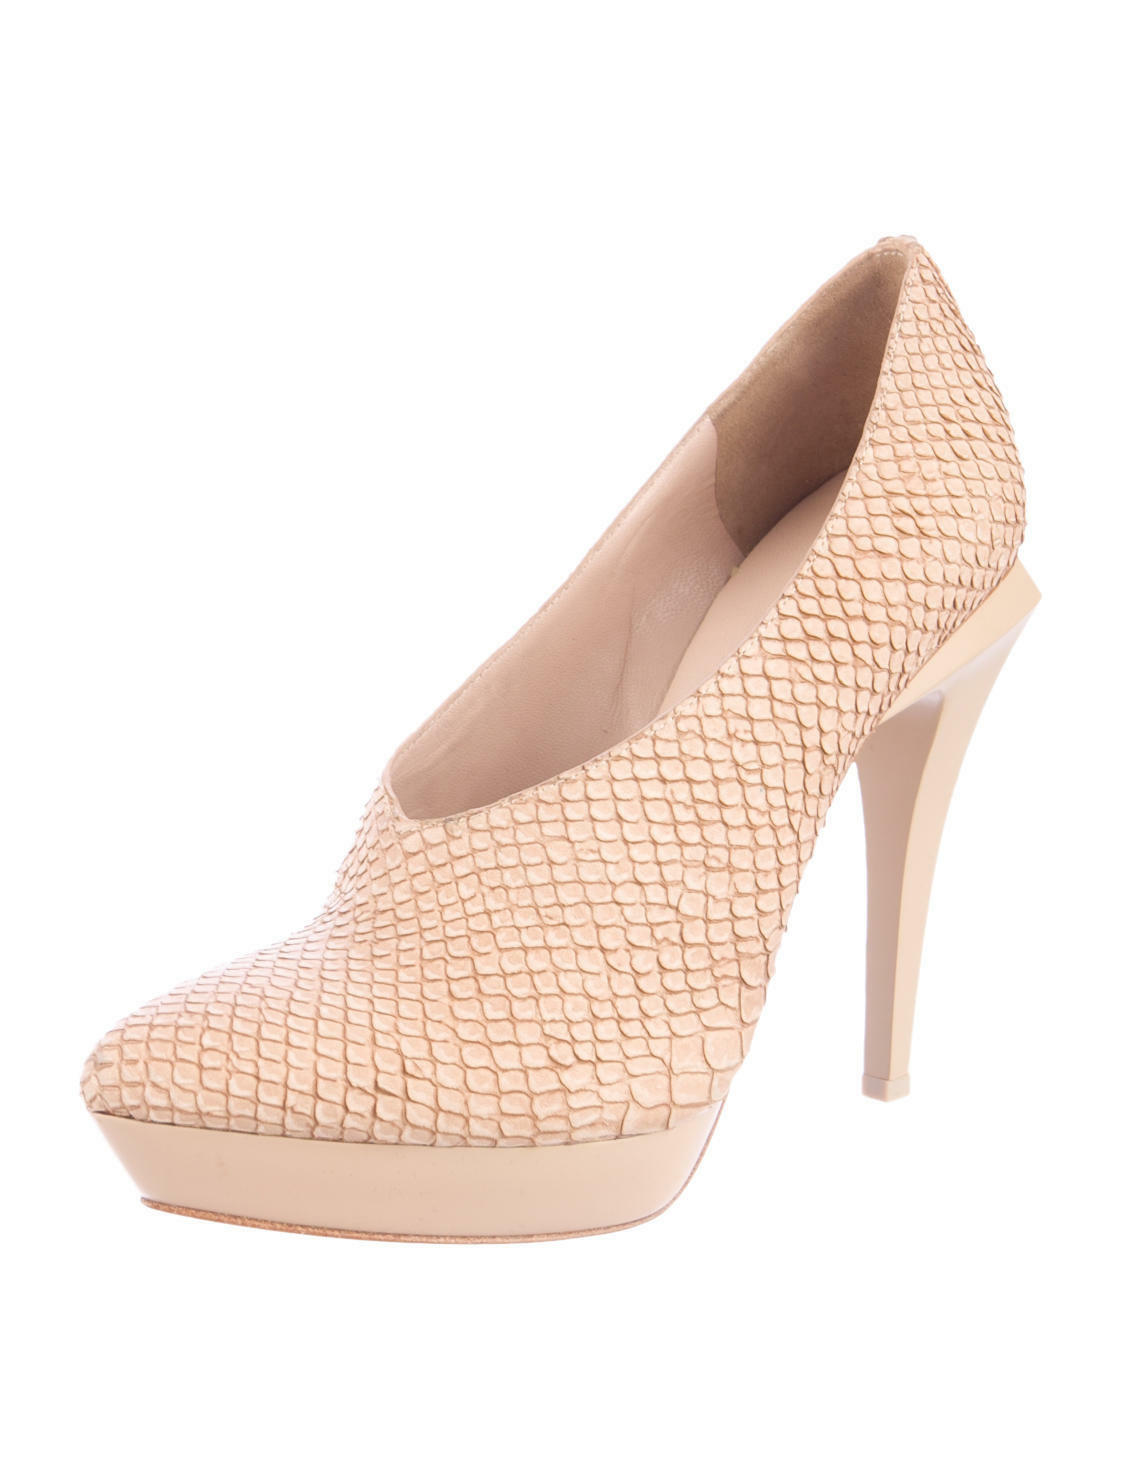 grande sconto GORGEOUS, SOLD OUT NWB BEIGE EMBOSSED LEATHER PUMPS BY ALEXANDER ALEXANDER ALEXANDER WANG  fino al 65% di sconto